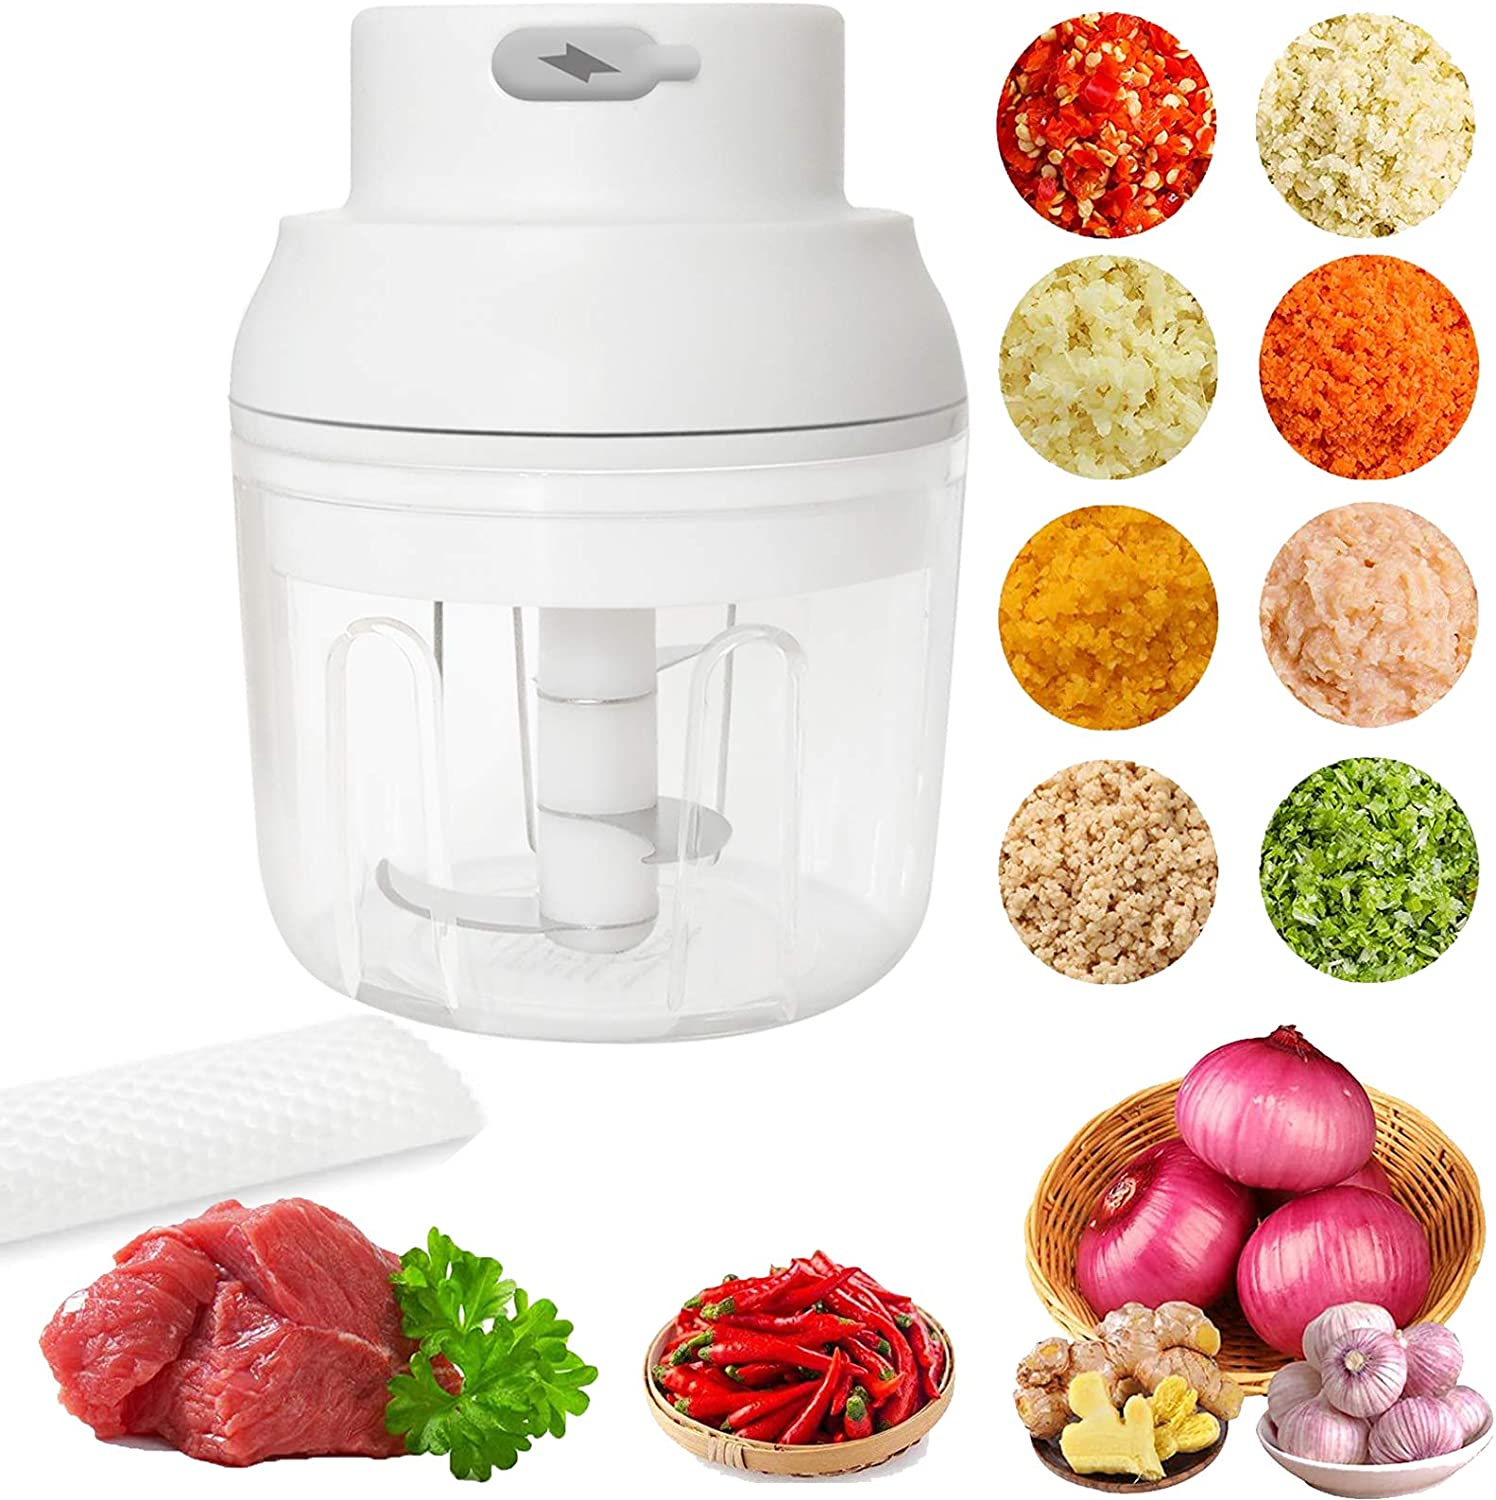 Tiupa Electric Mini Garlic Chopper,Small Chopper Food Processor, Kitchen Gadgets Vegetable Spices Onion Crusher Blender,Waterproof Portable Food Processor Mincer for Chili Ginger Onion Meat (250ml)